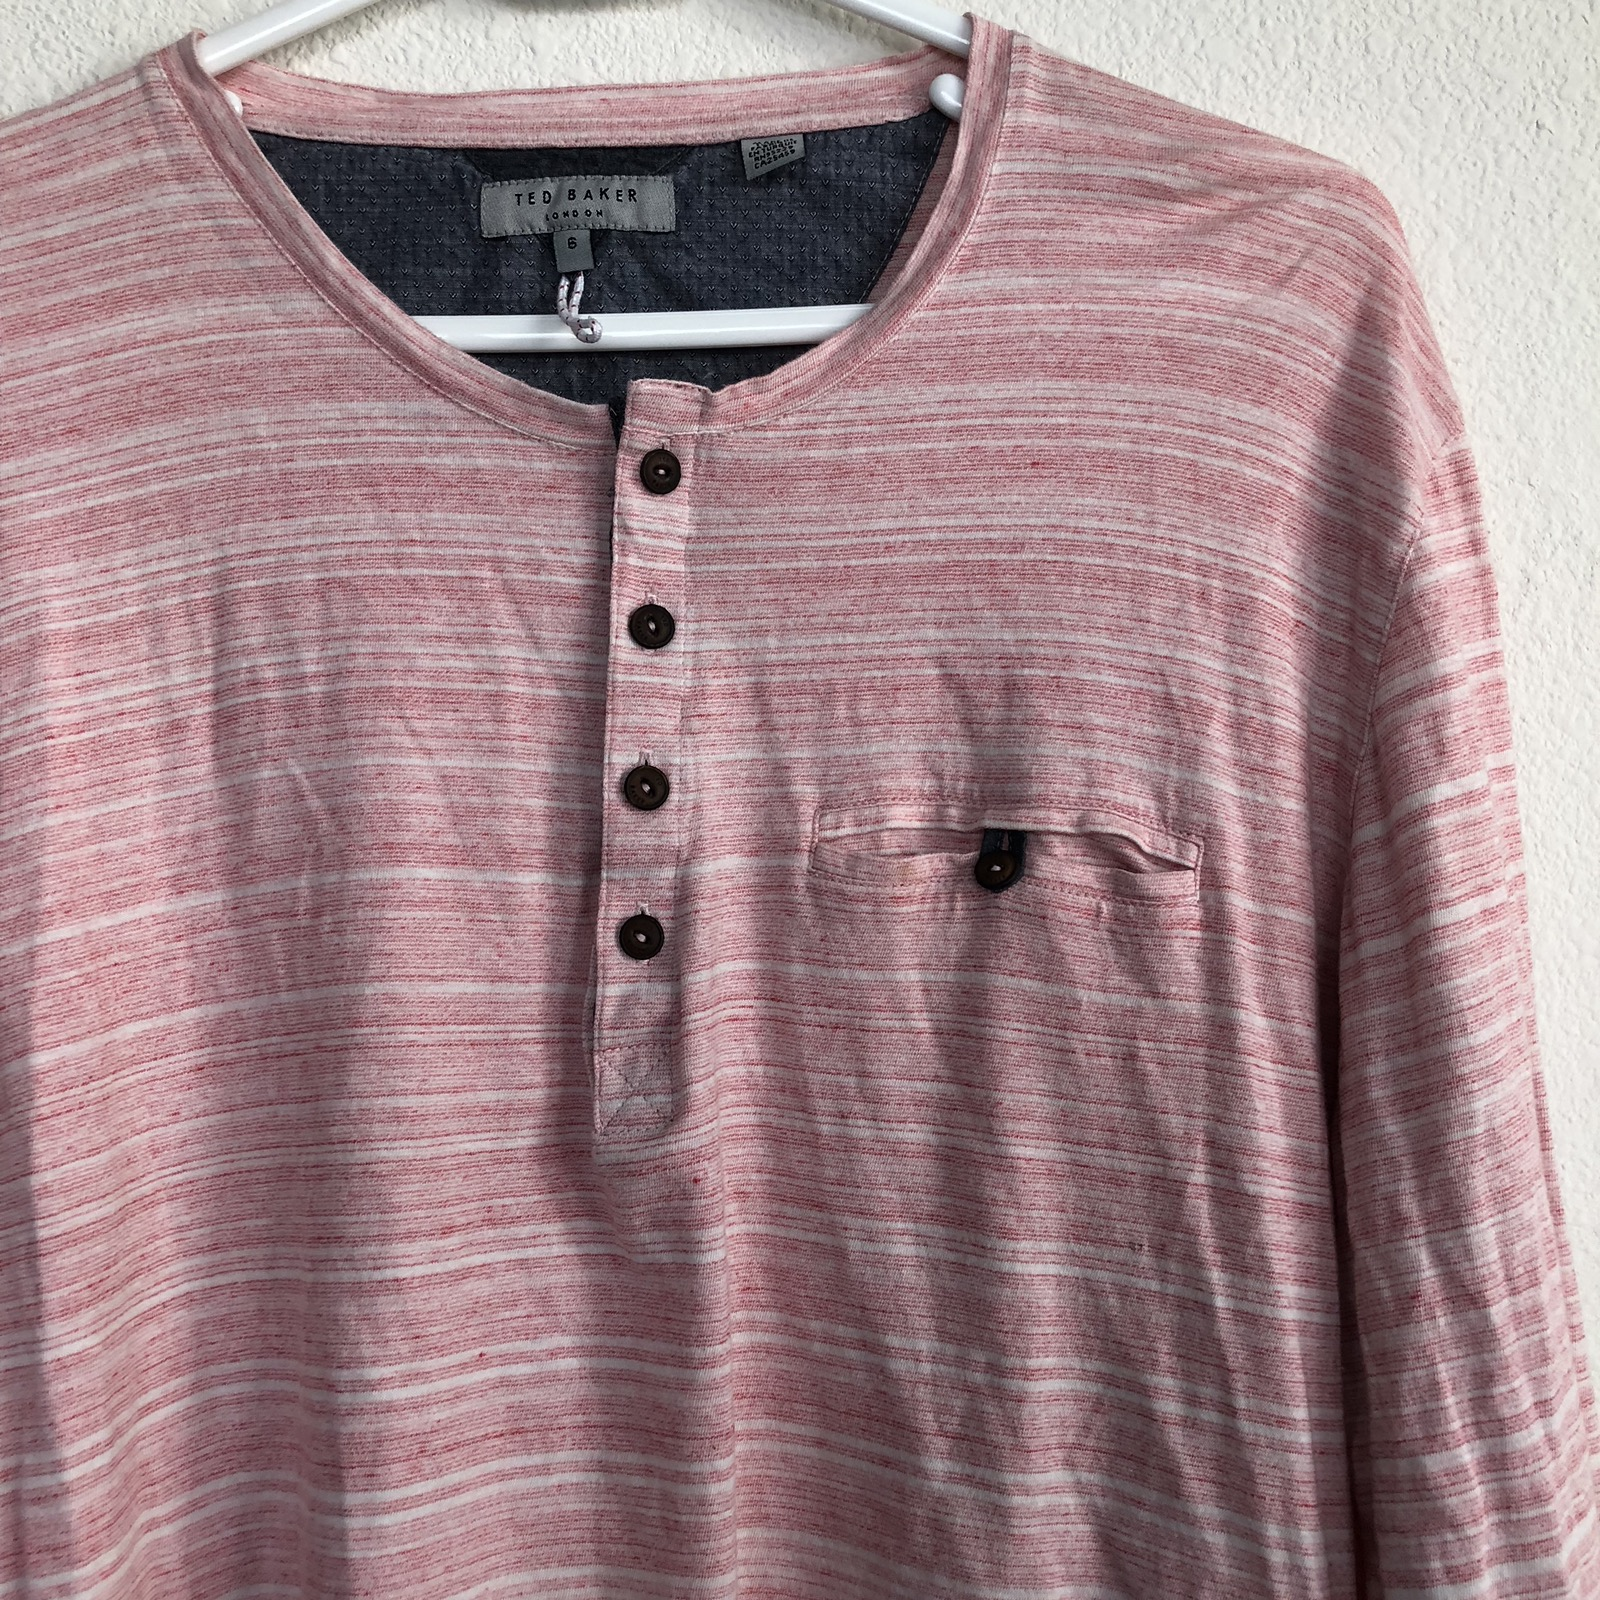 44934f2d6 Ted Baker TED BAKER Men s Striped Long Sleeve Front Pocket Henley Shirt  Size Large Size l - Long Sleeve T-Shirts for Sale - Grailed